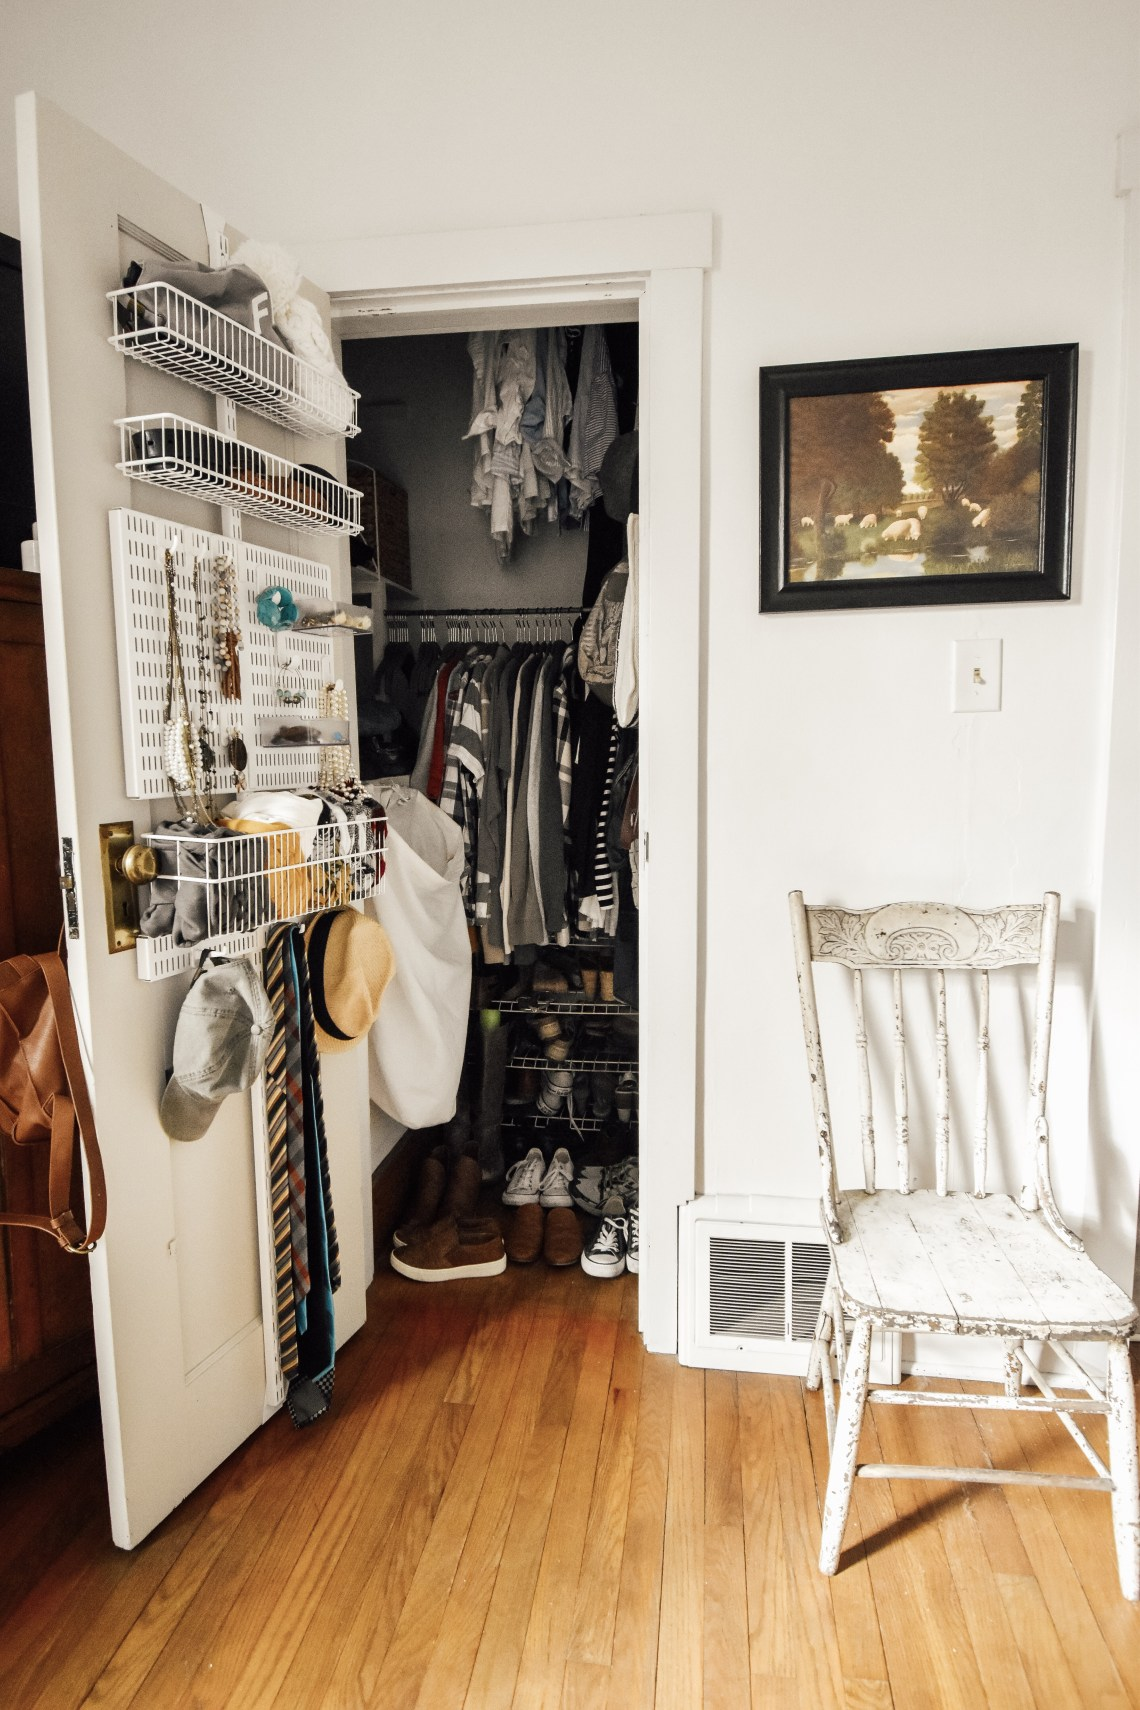 How to Organize Small Spaces in a Small Home